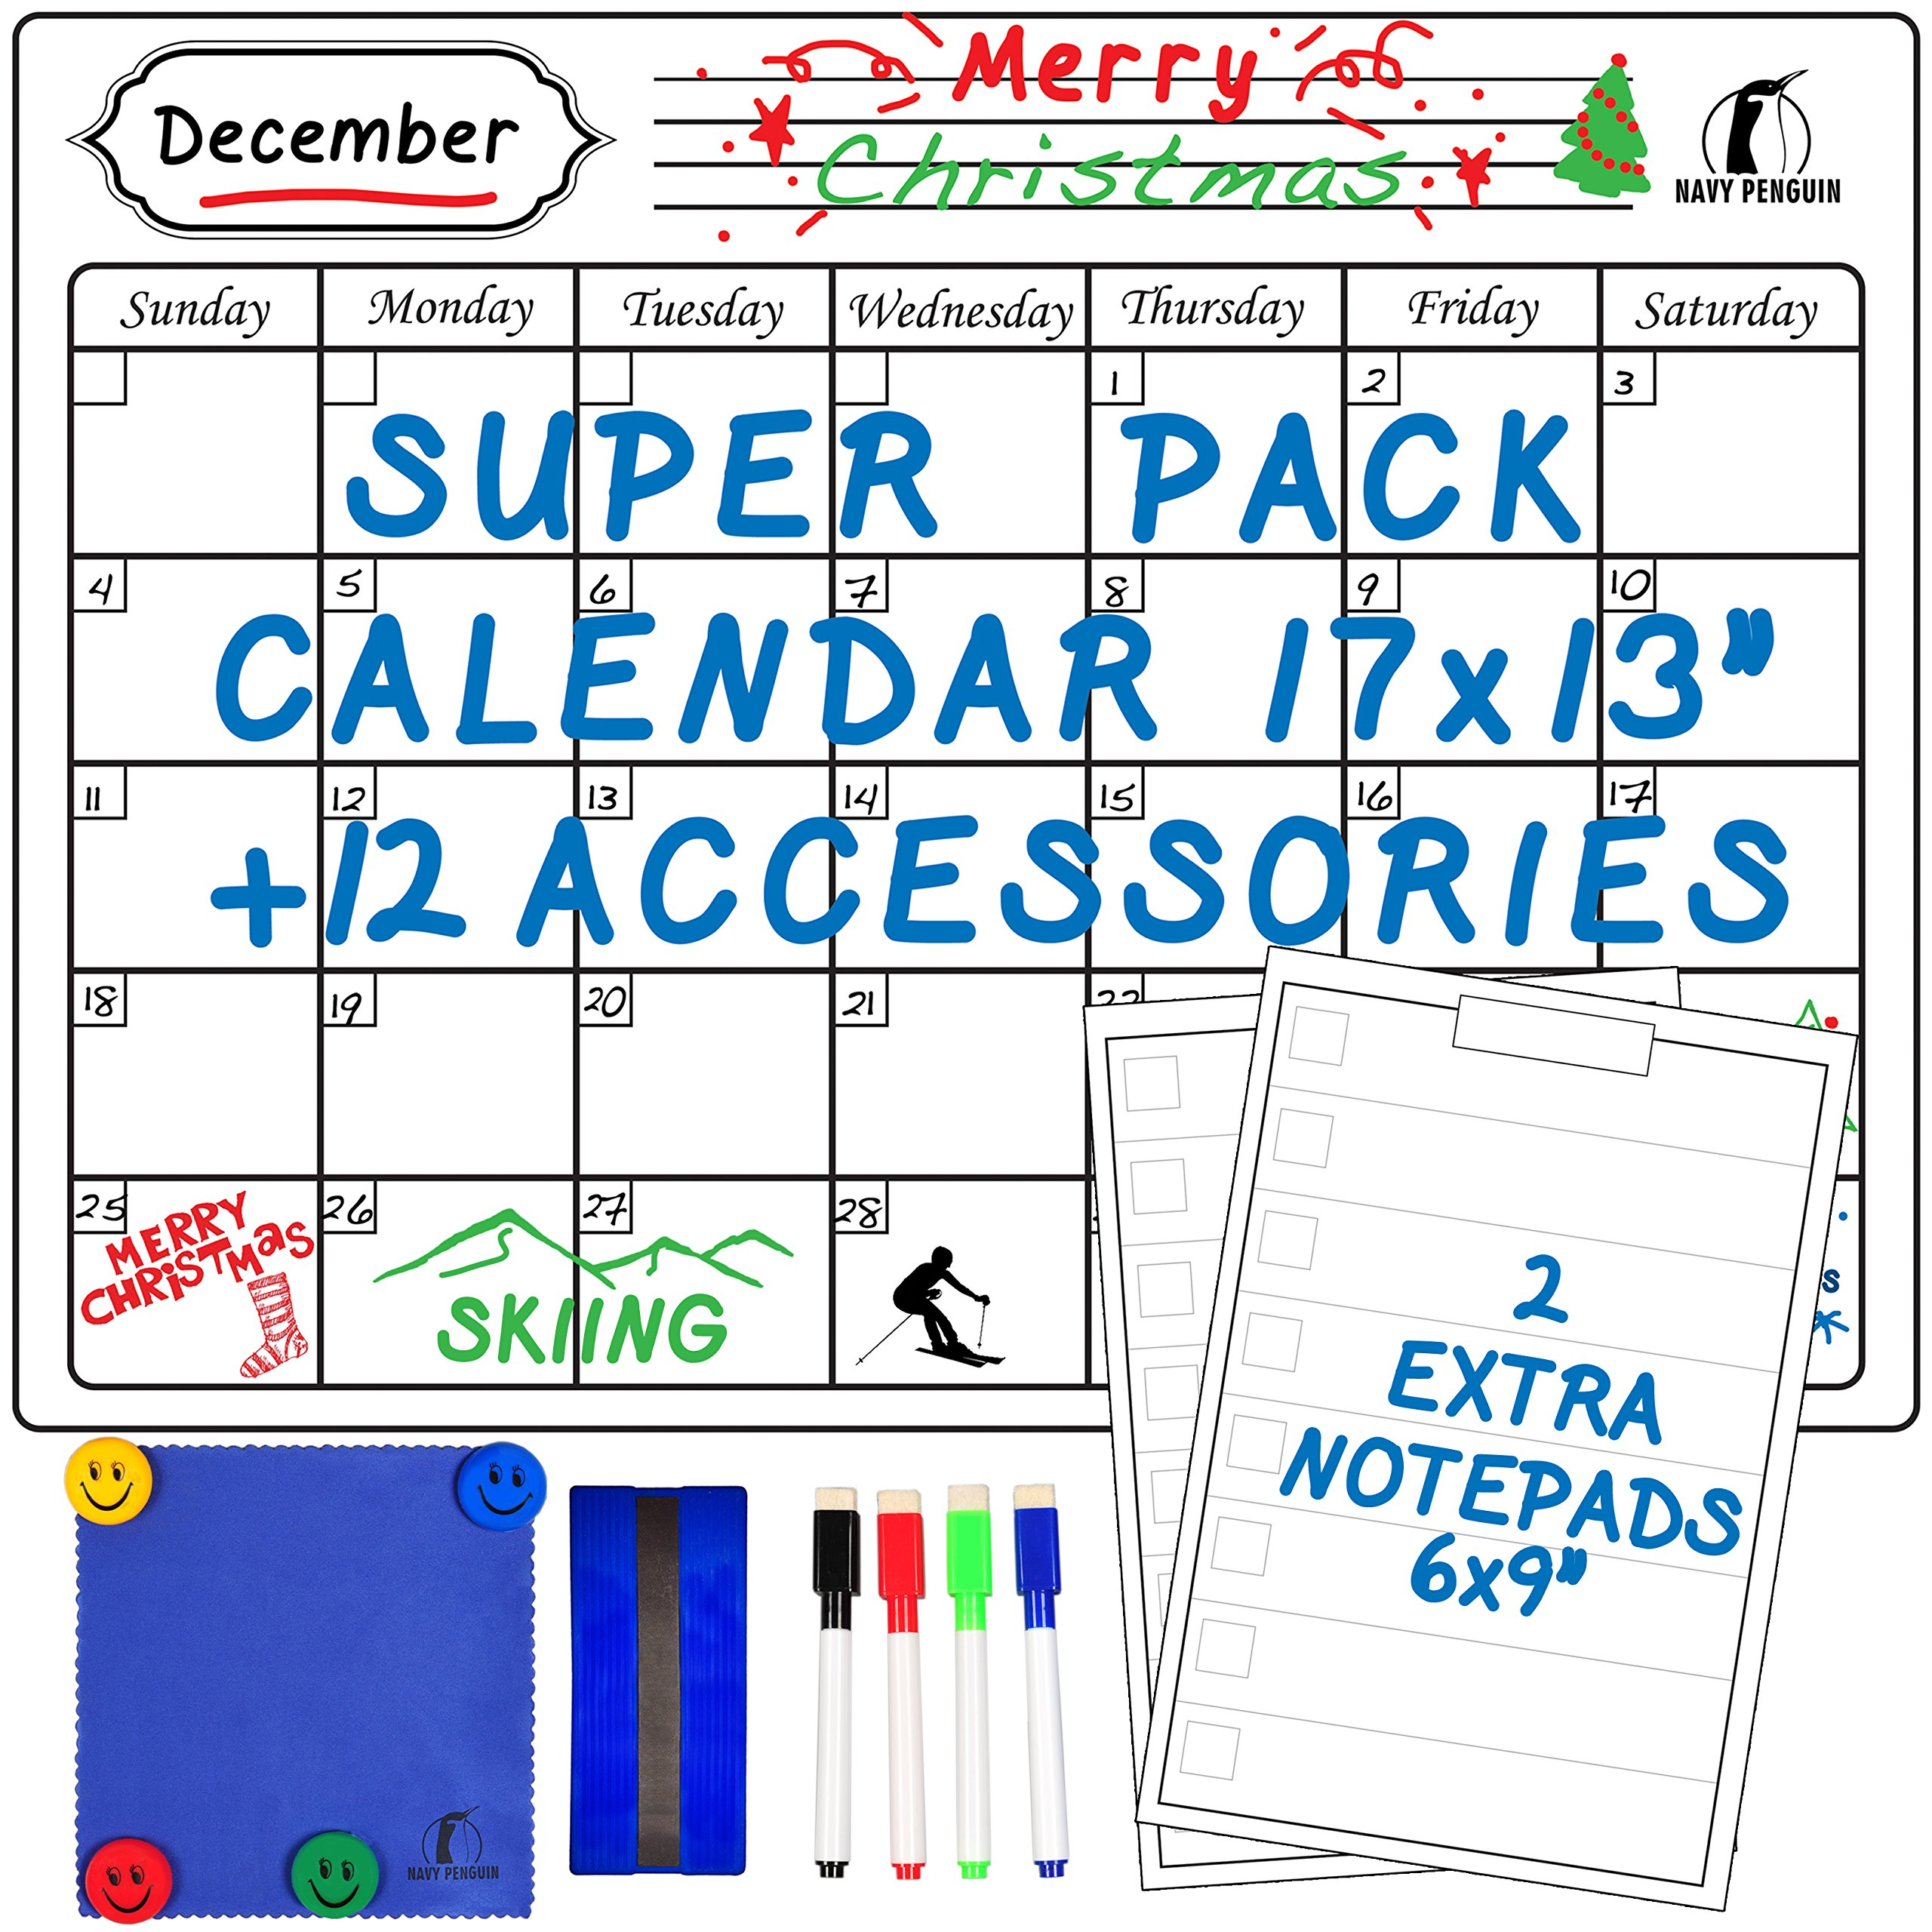 Whiteboard Monthly Calendar Set - Magnetic White Board Calendar 17x13'' + 2 Dry Erase Notepads 6x9'' + 1 Dry Eraser, 1 Cloth, 4 Dry Wipe Markers, 4 Magnets - Fridge Grocery List for Kitchen